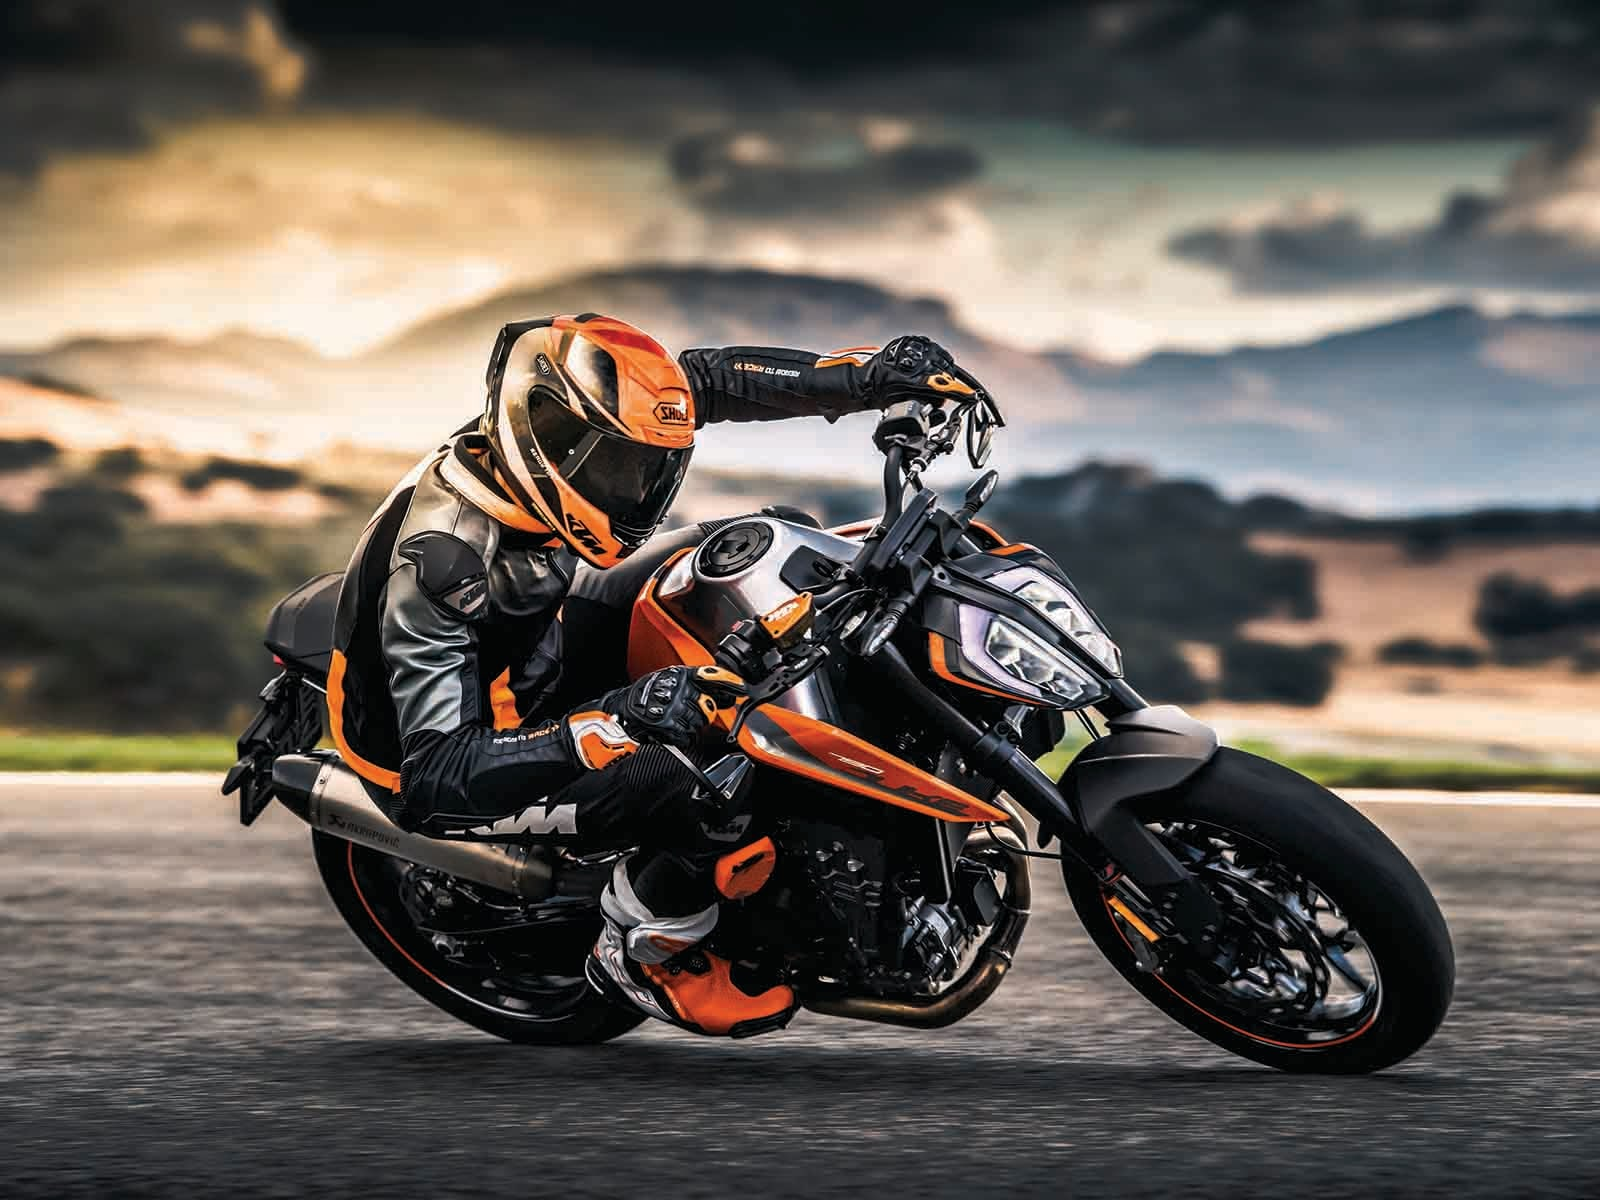 KTM al Motor Bike Expo 2018 - Moto News - Panoramauto